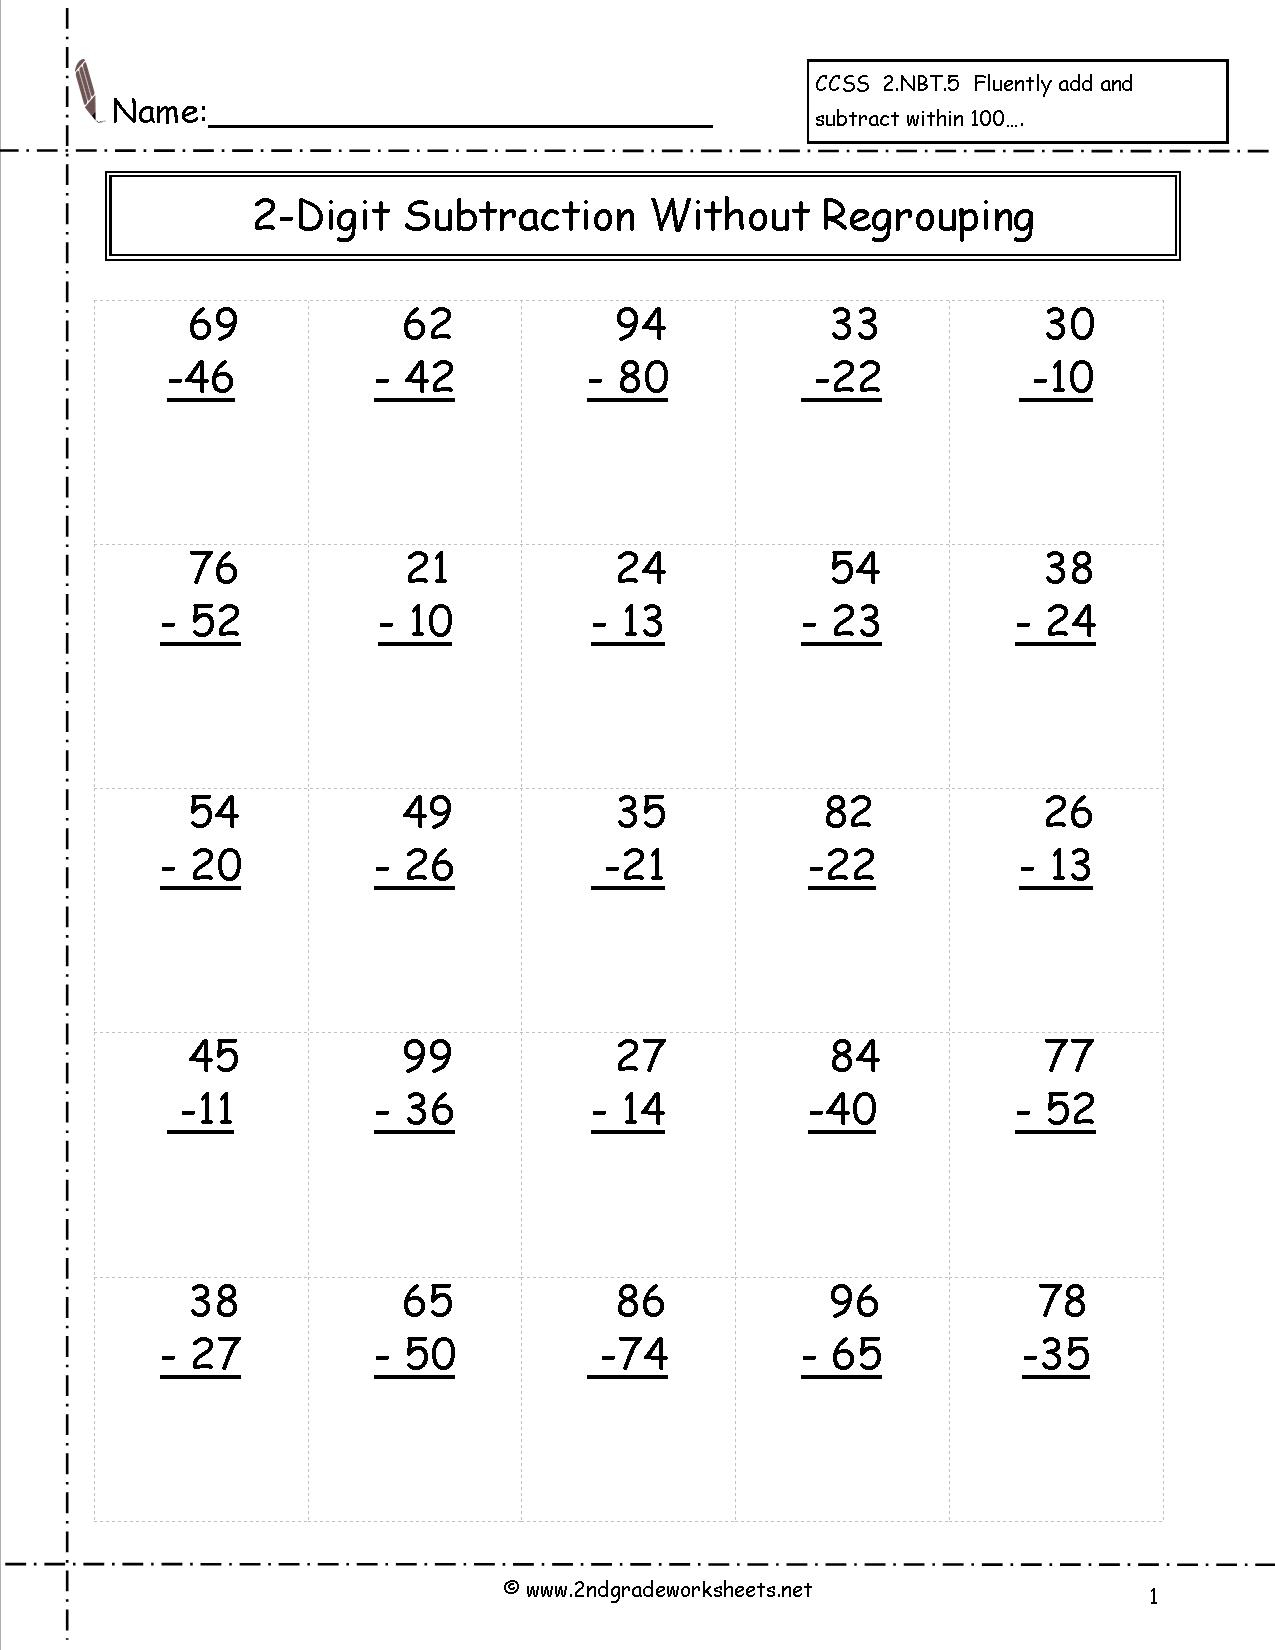 Two Digit Subtraction Worksheets - Free Printable Subtraction Worksheets For 2Nd Grade